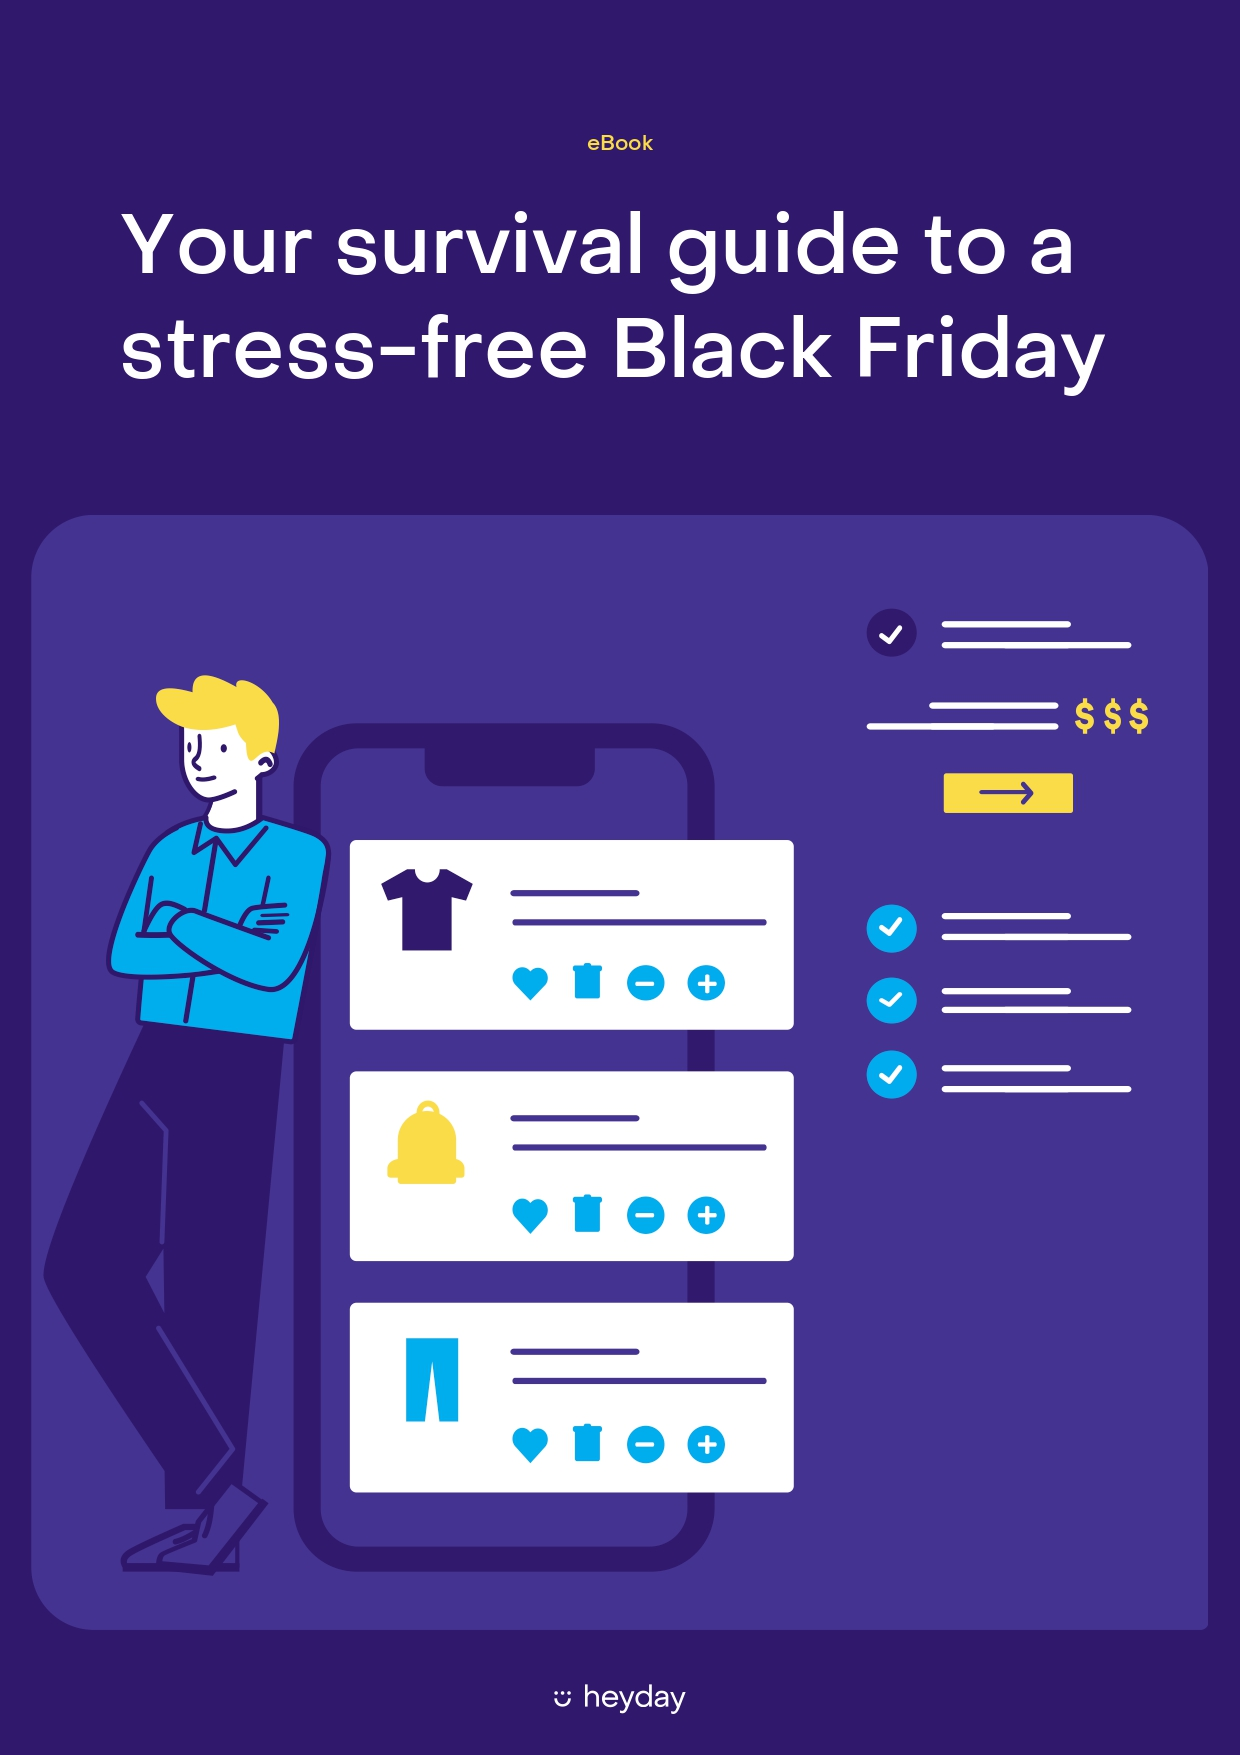 Your survival guide to a stress-free Black Friday